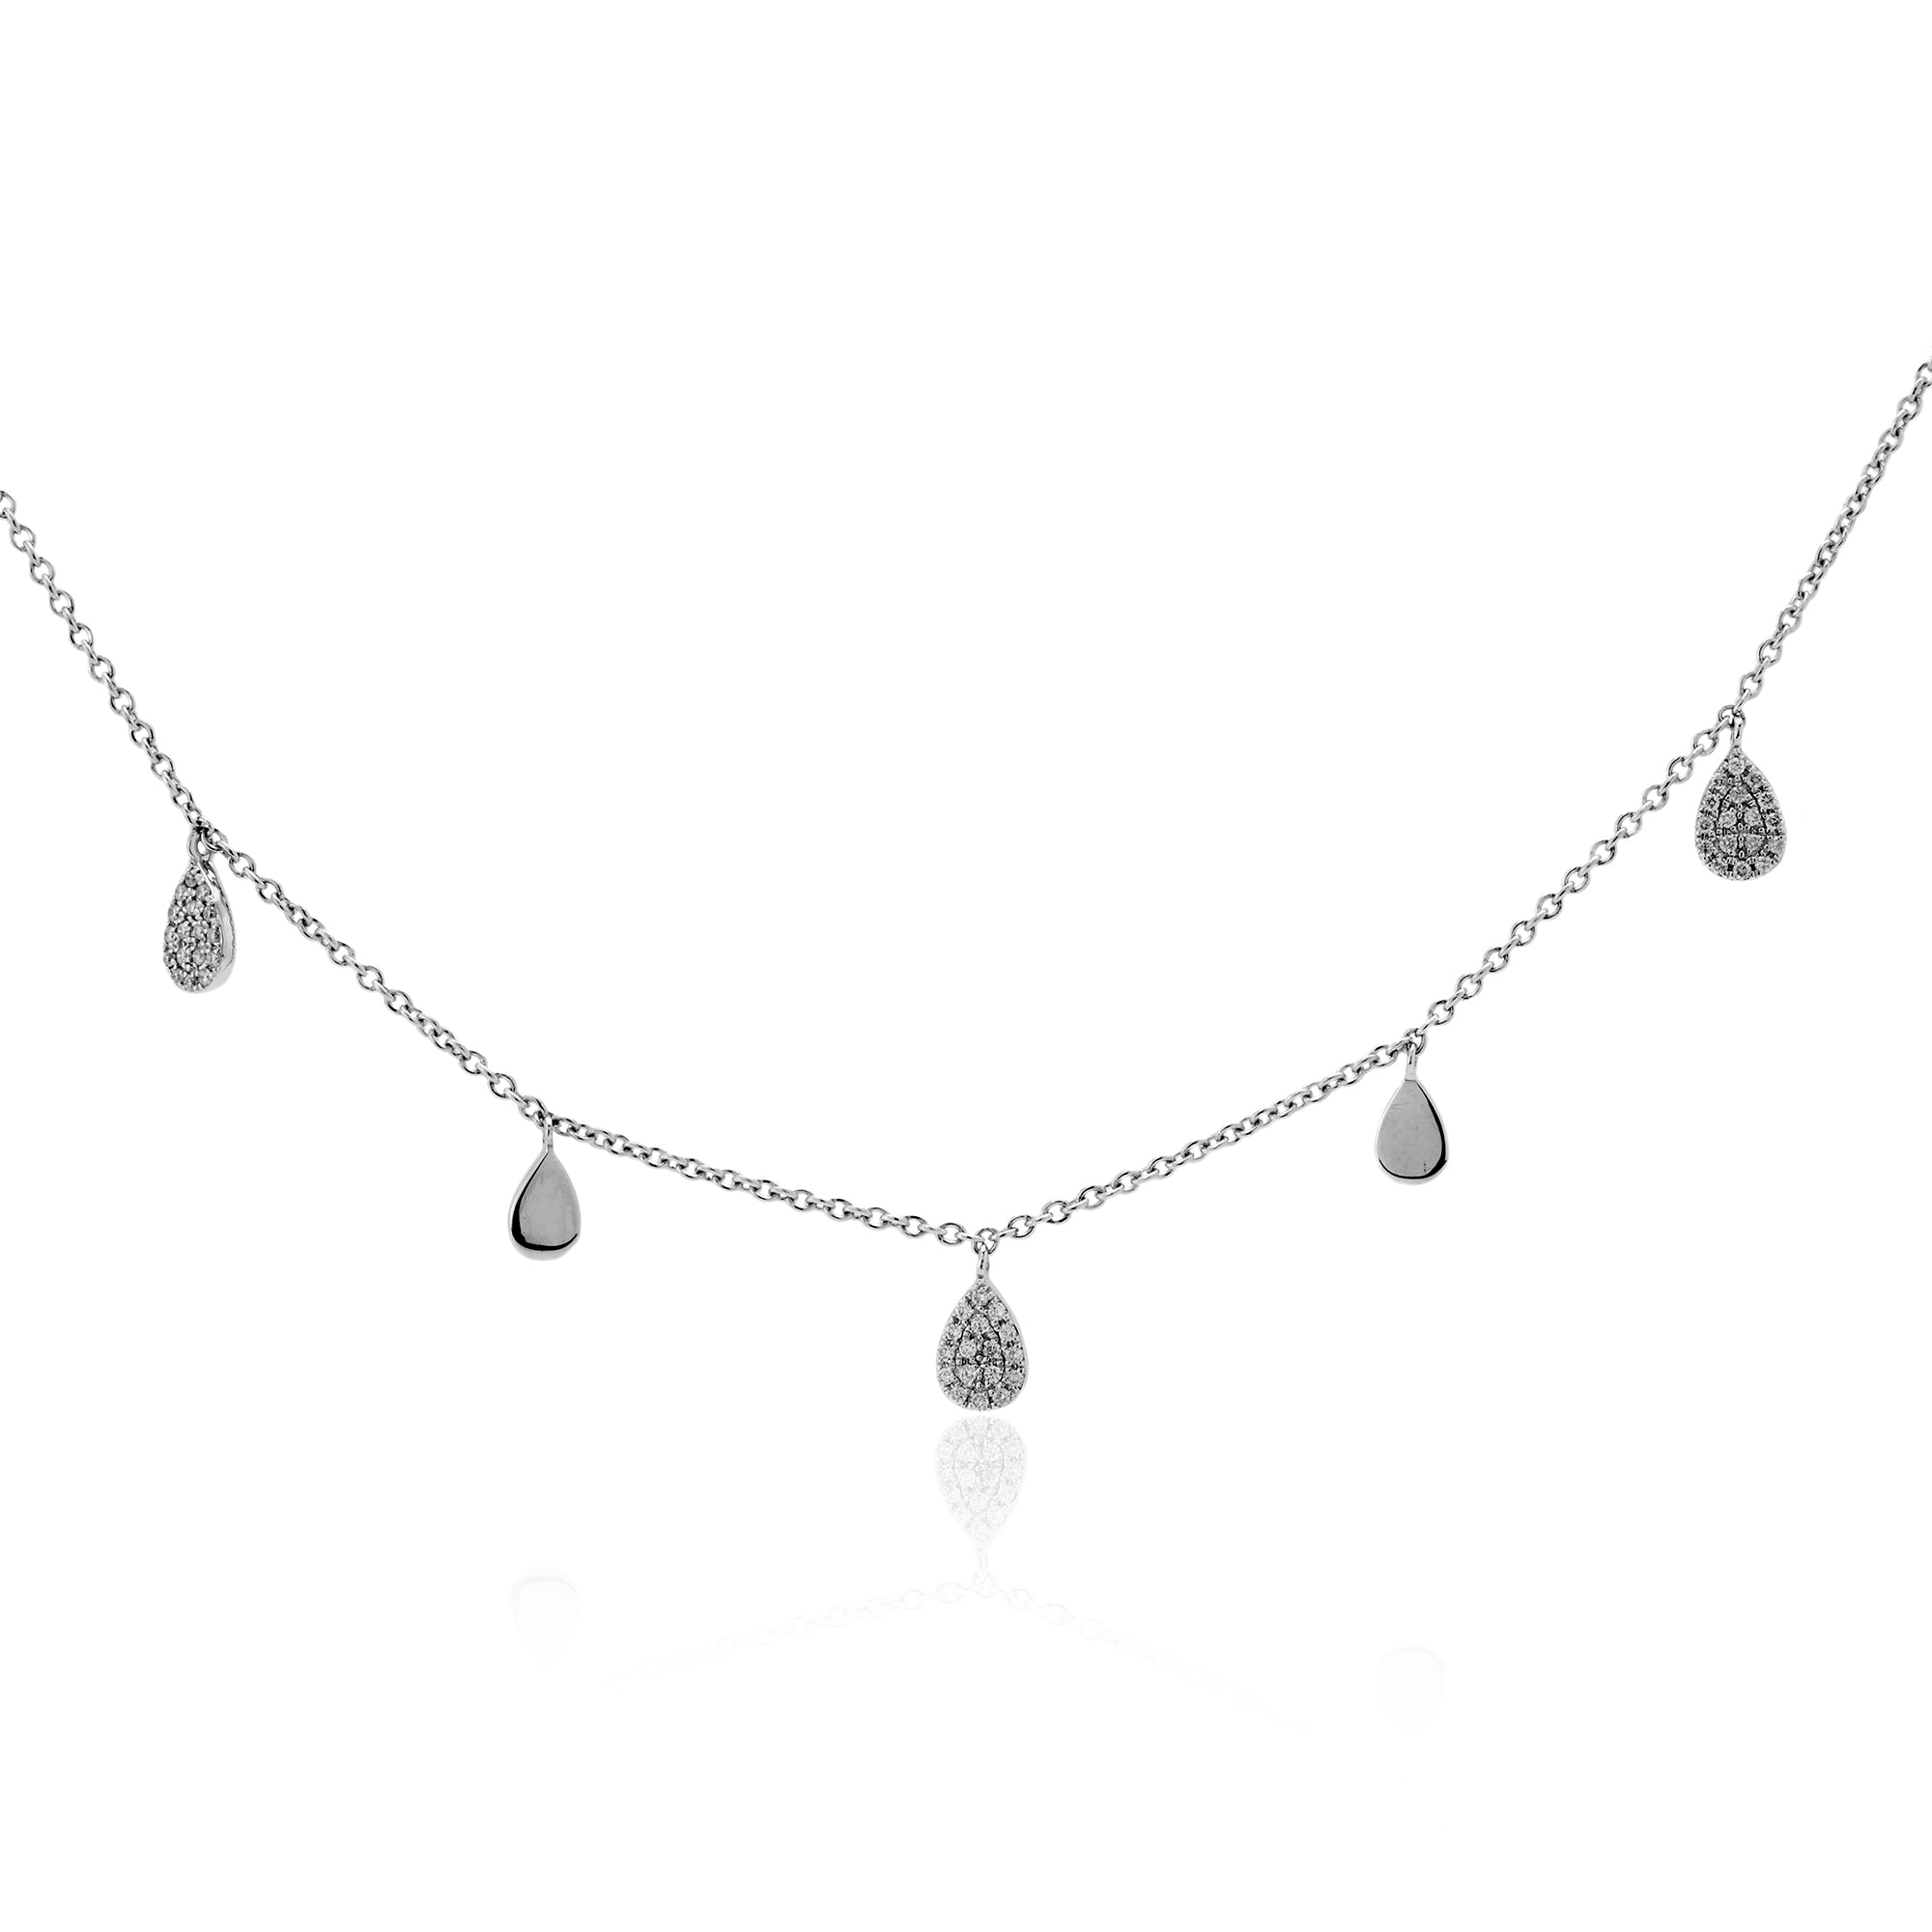 Long 18K Diamond Pave Necklace